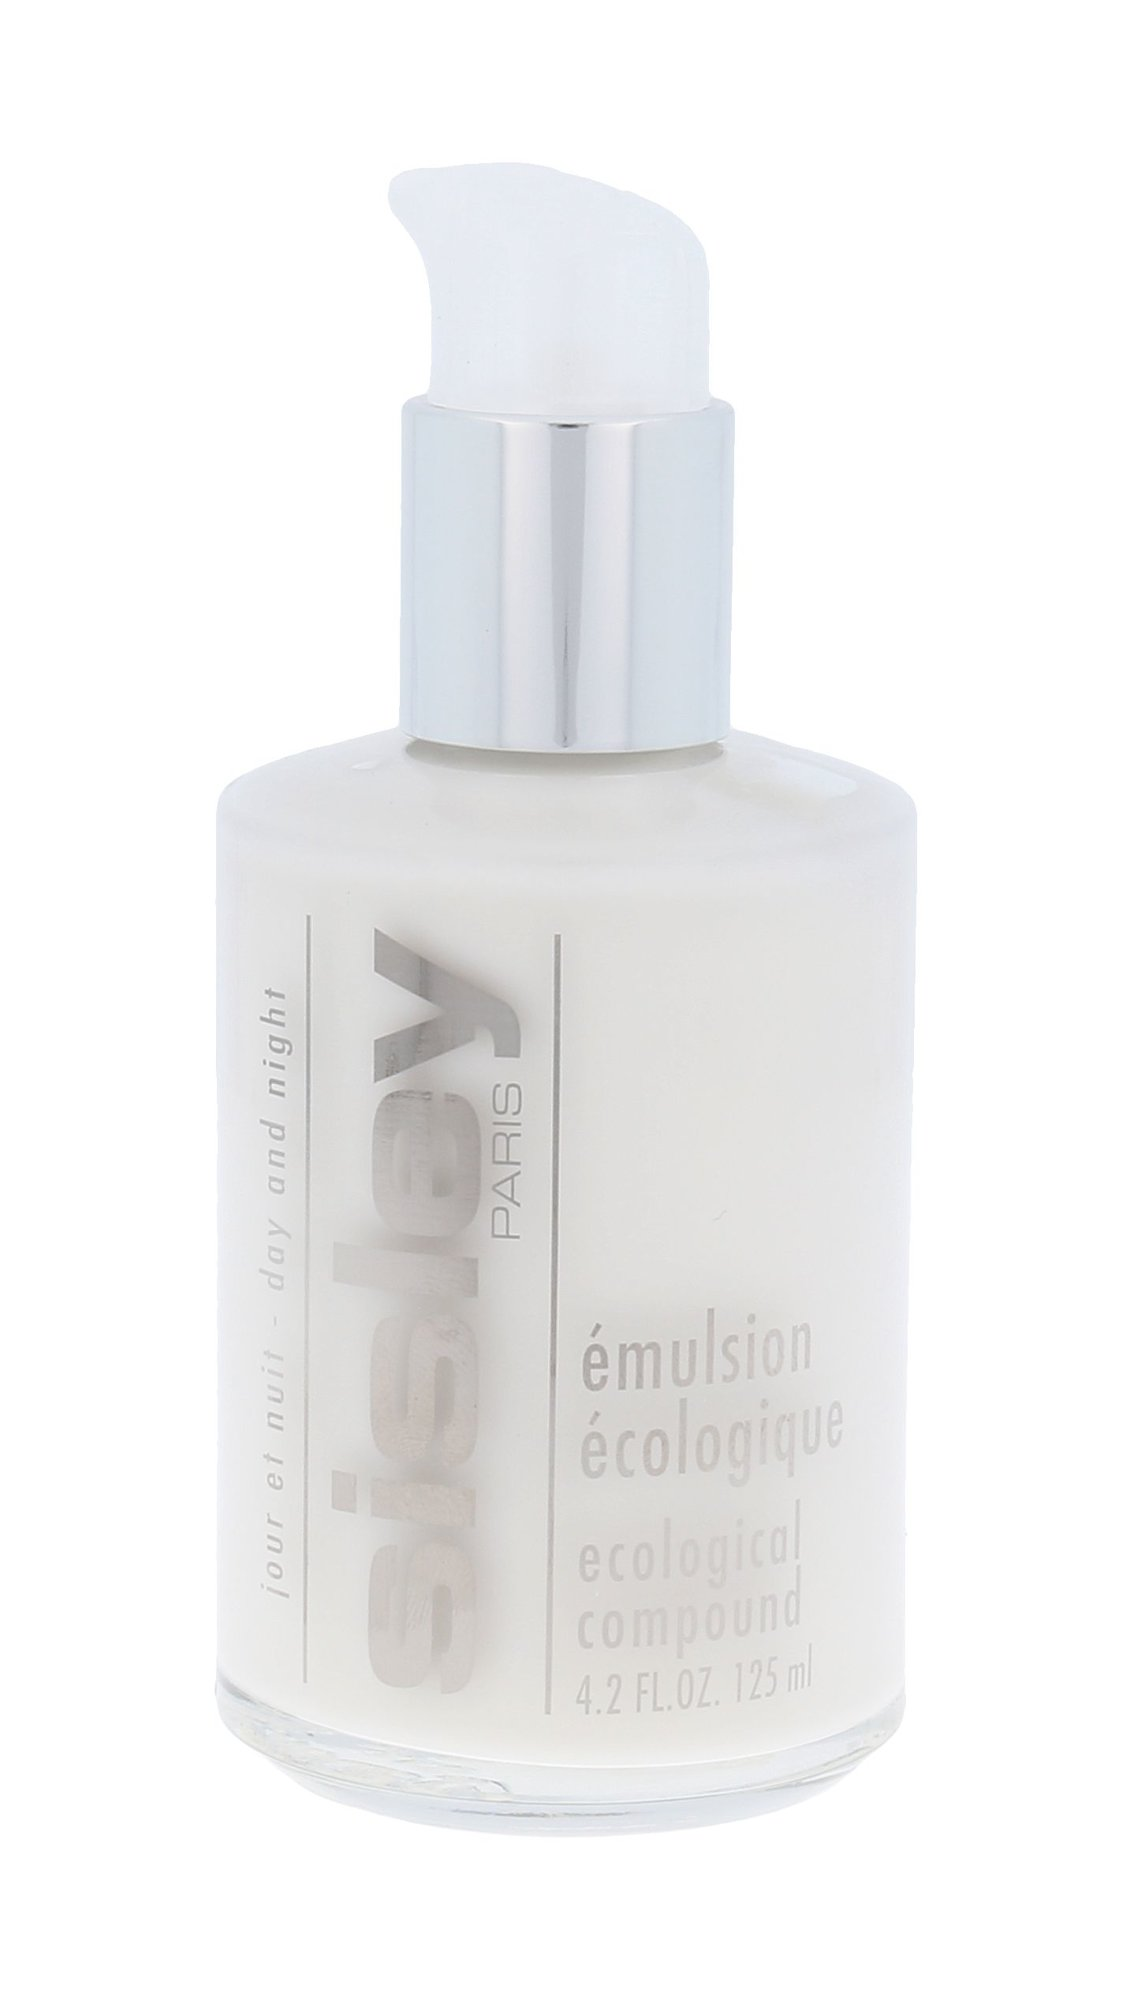 Sisley Ecological Compound Cosmetic 125ml